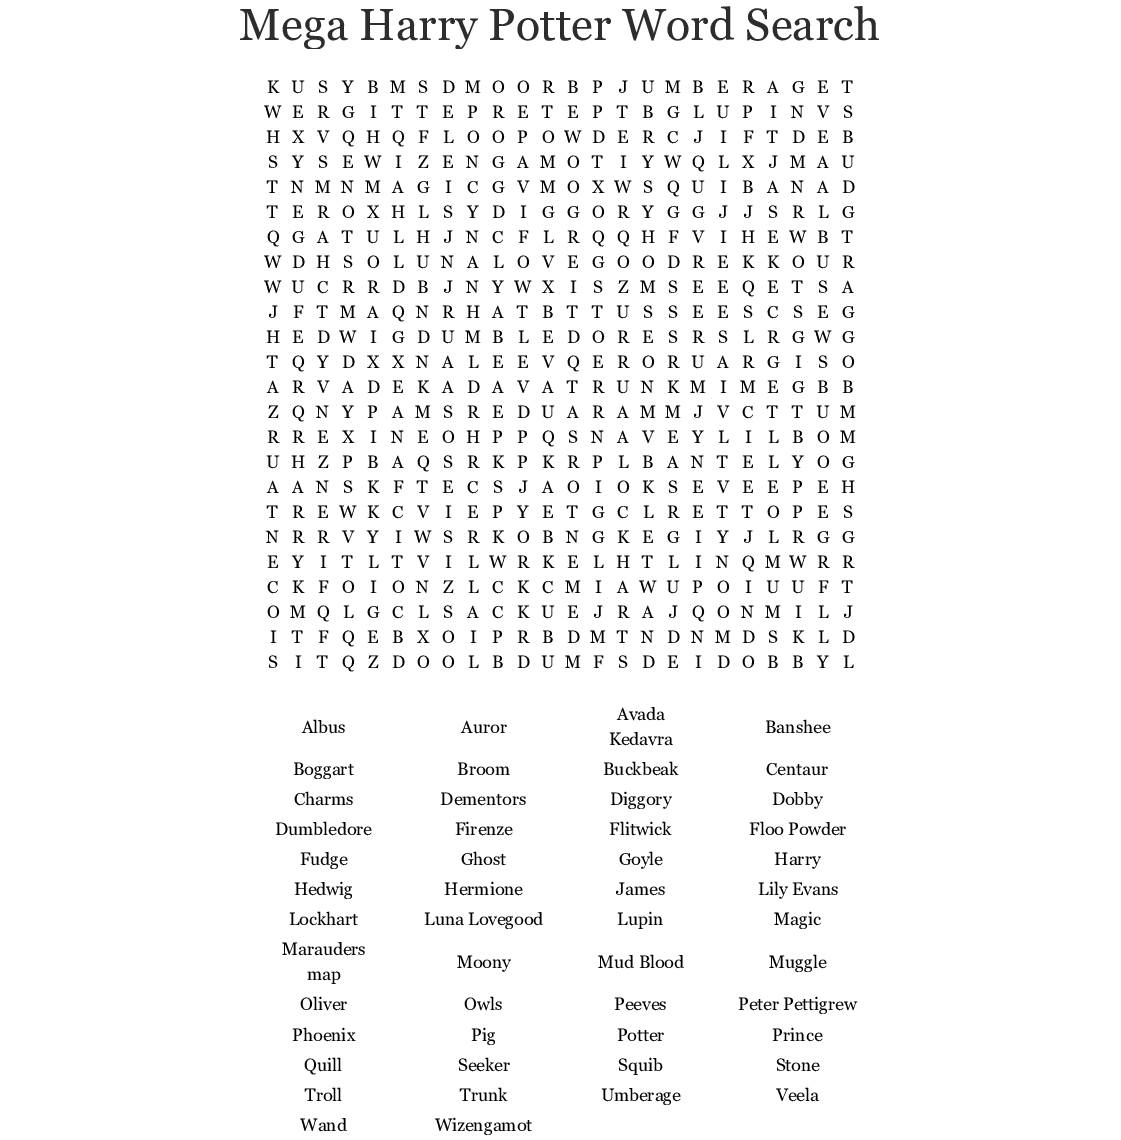 Mega Harry Potter Word Search